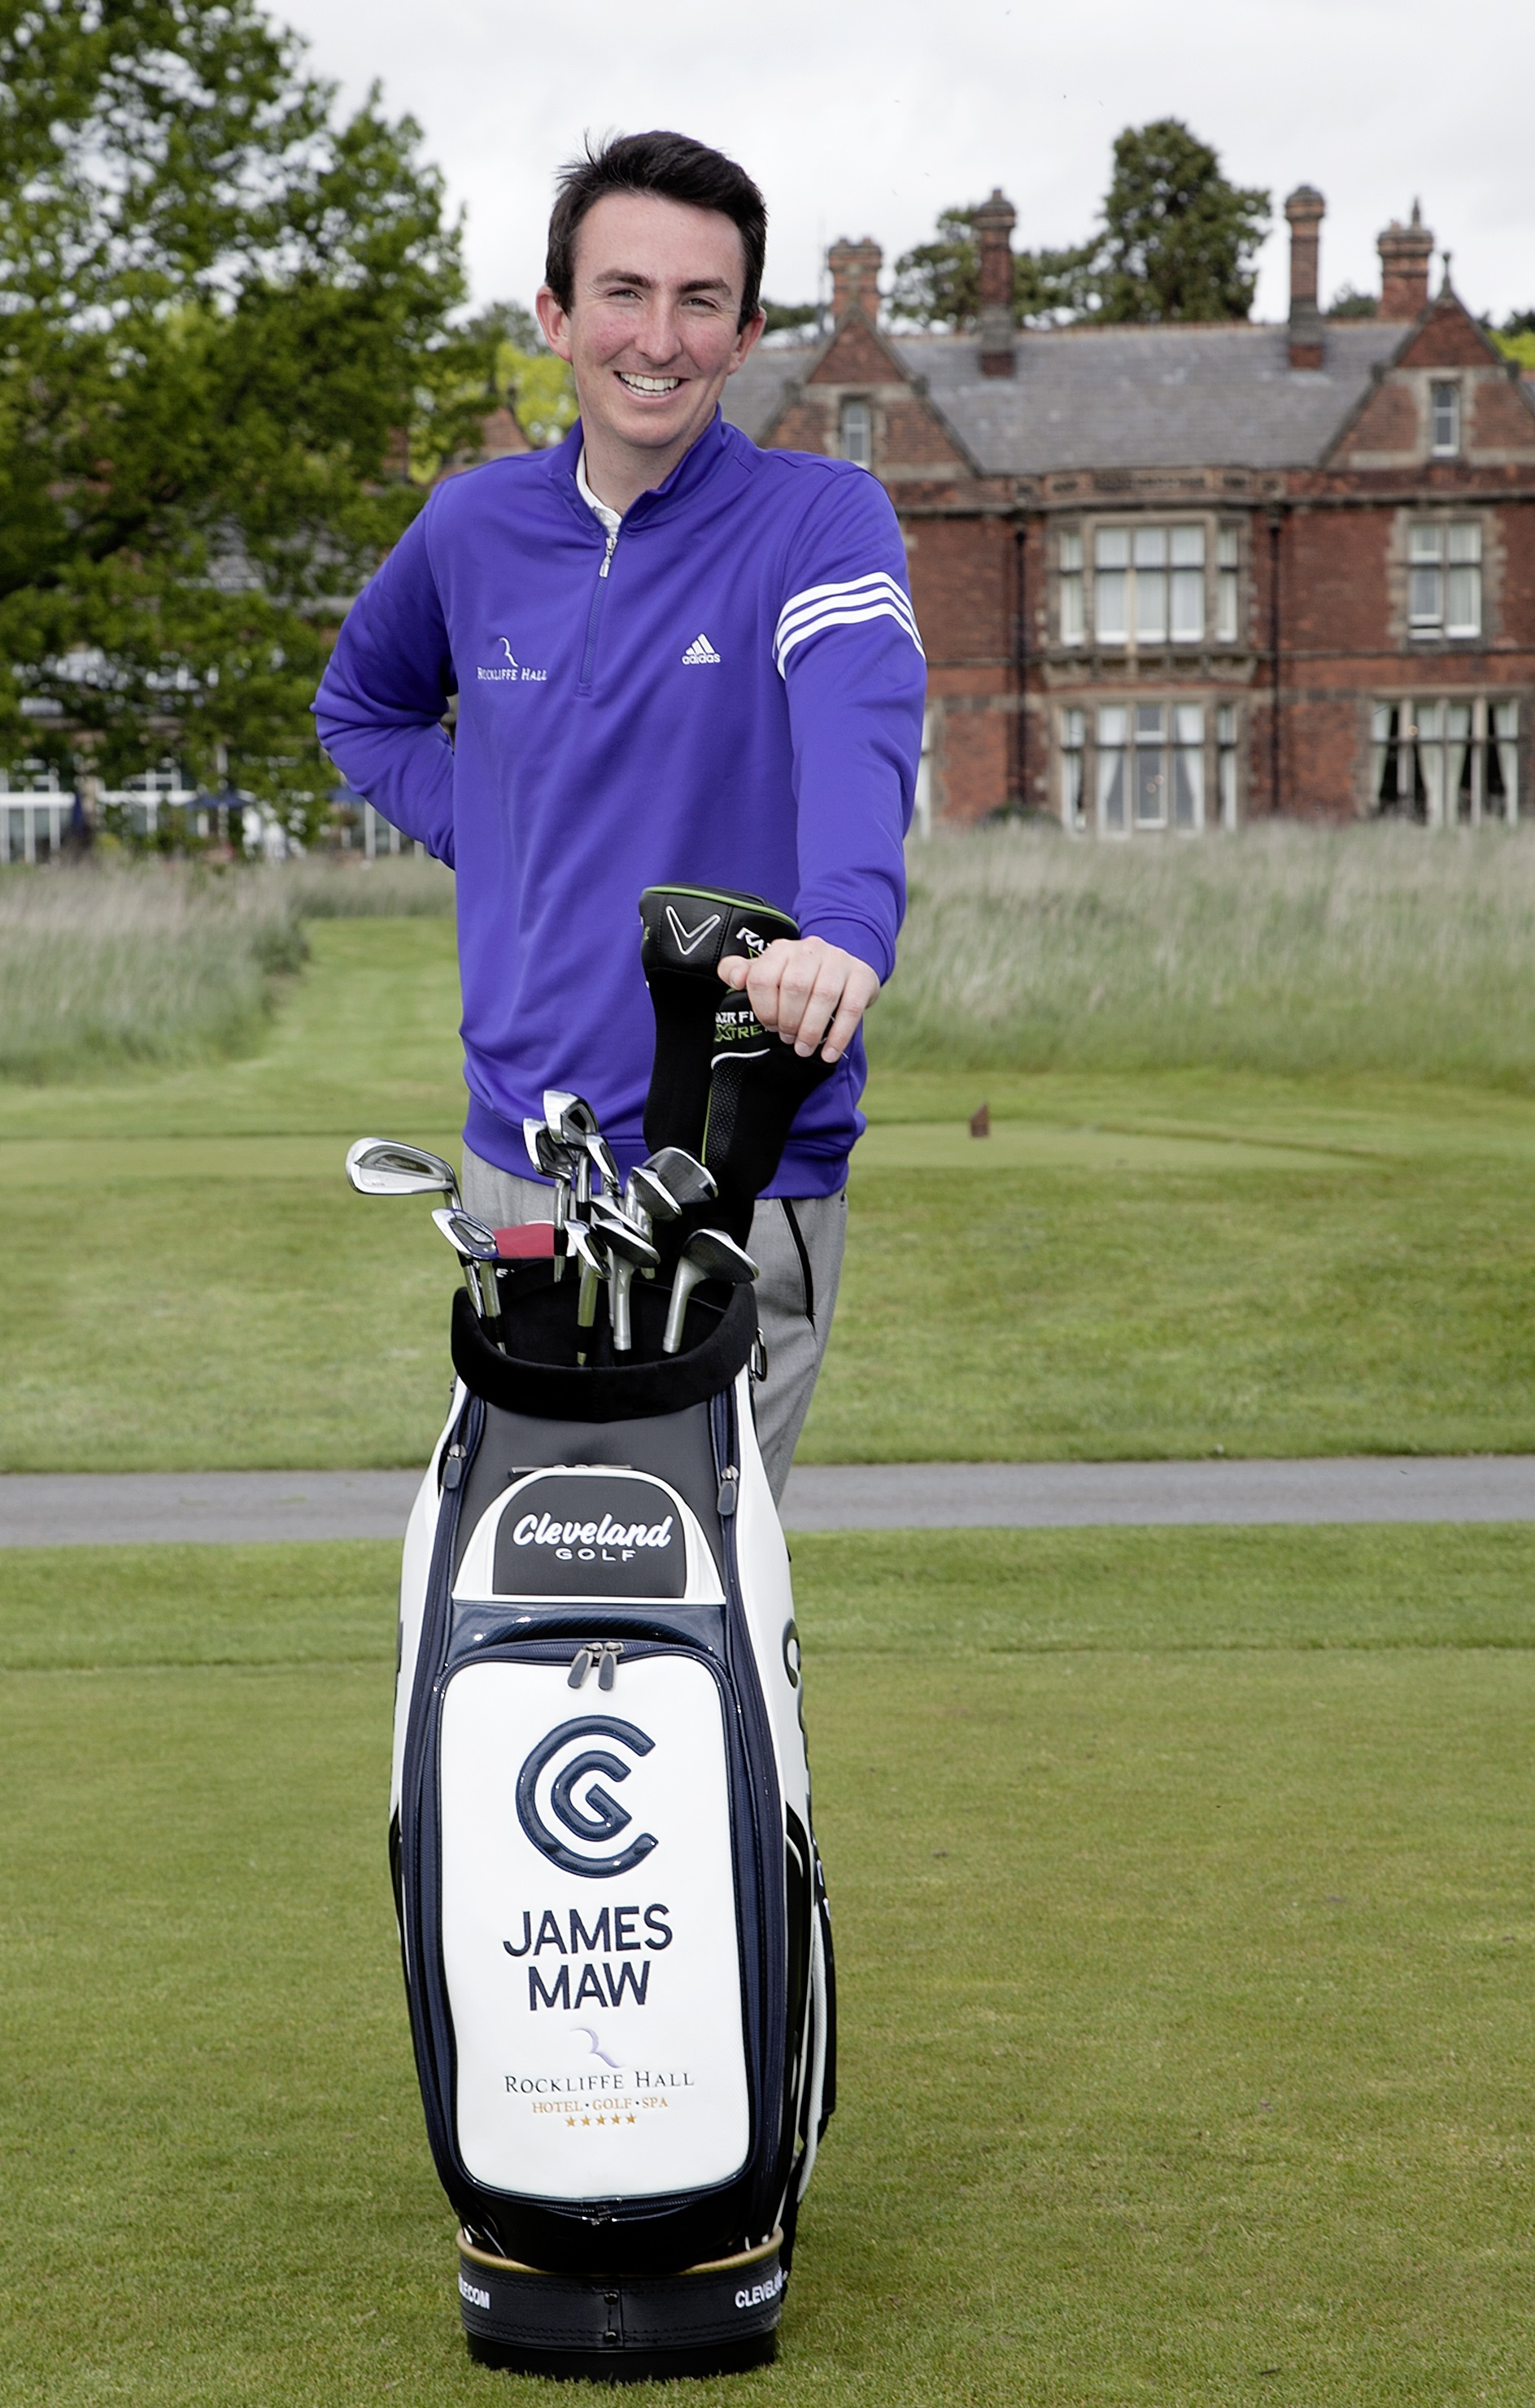 NEW DEAL: James Maw is officially attached to Rockliffe Hall as he plots EuroPro Tour success